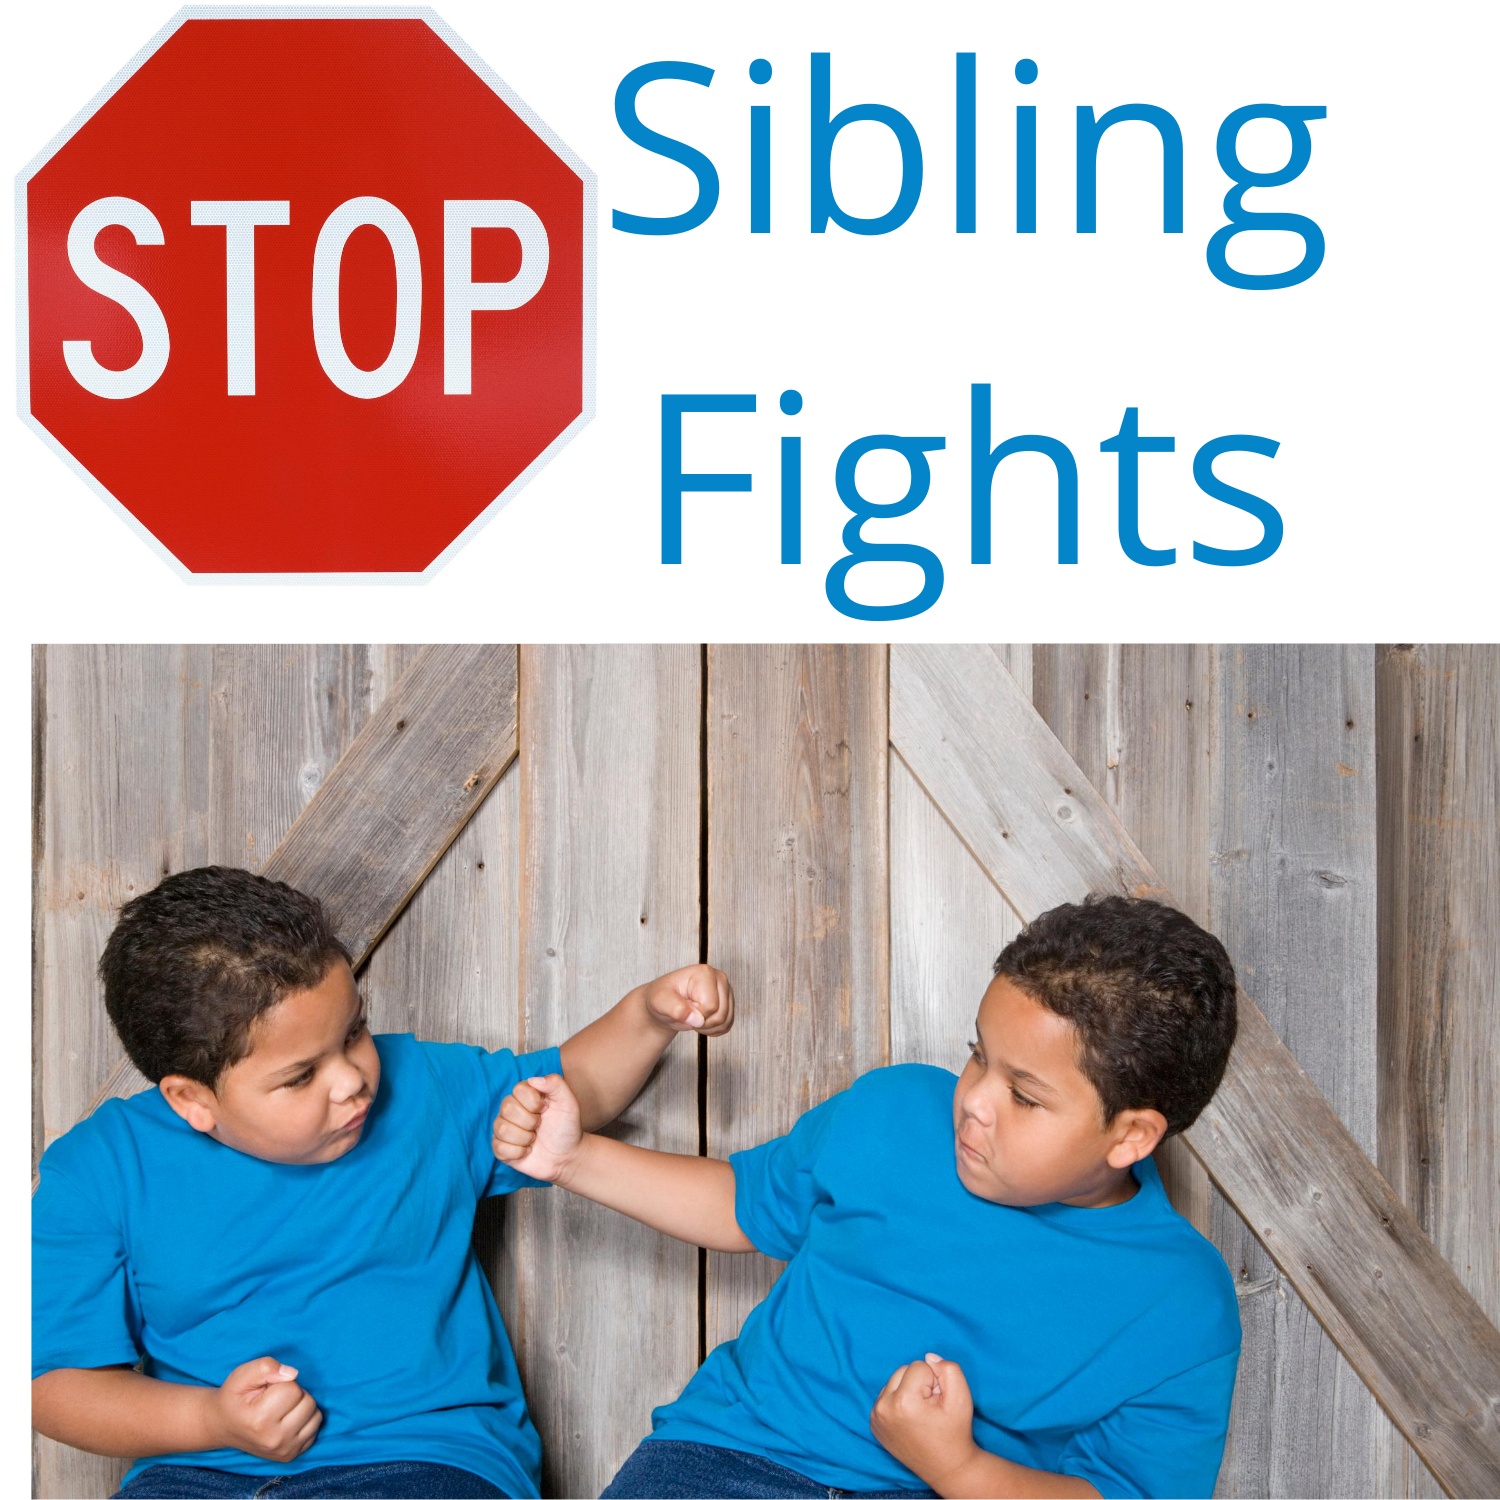 Stop Sibling Fights